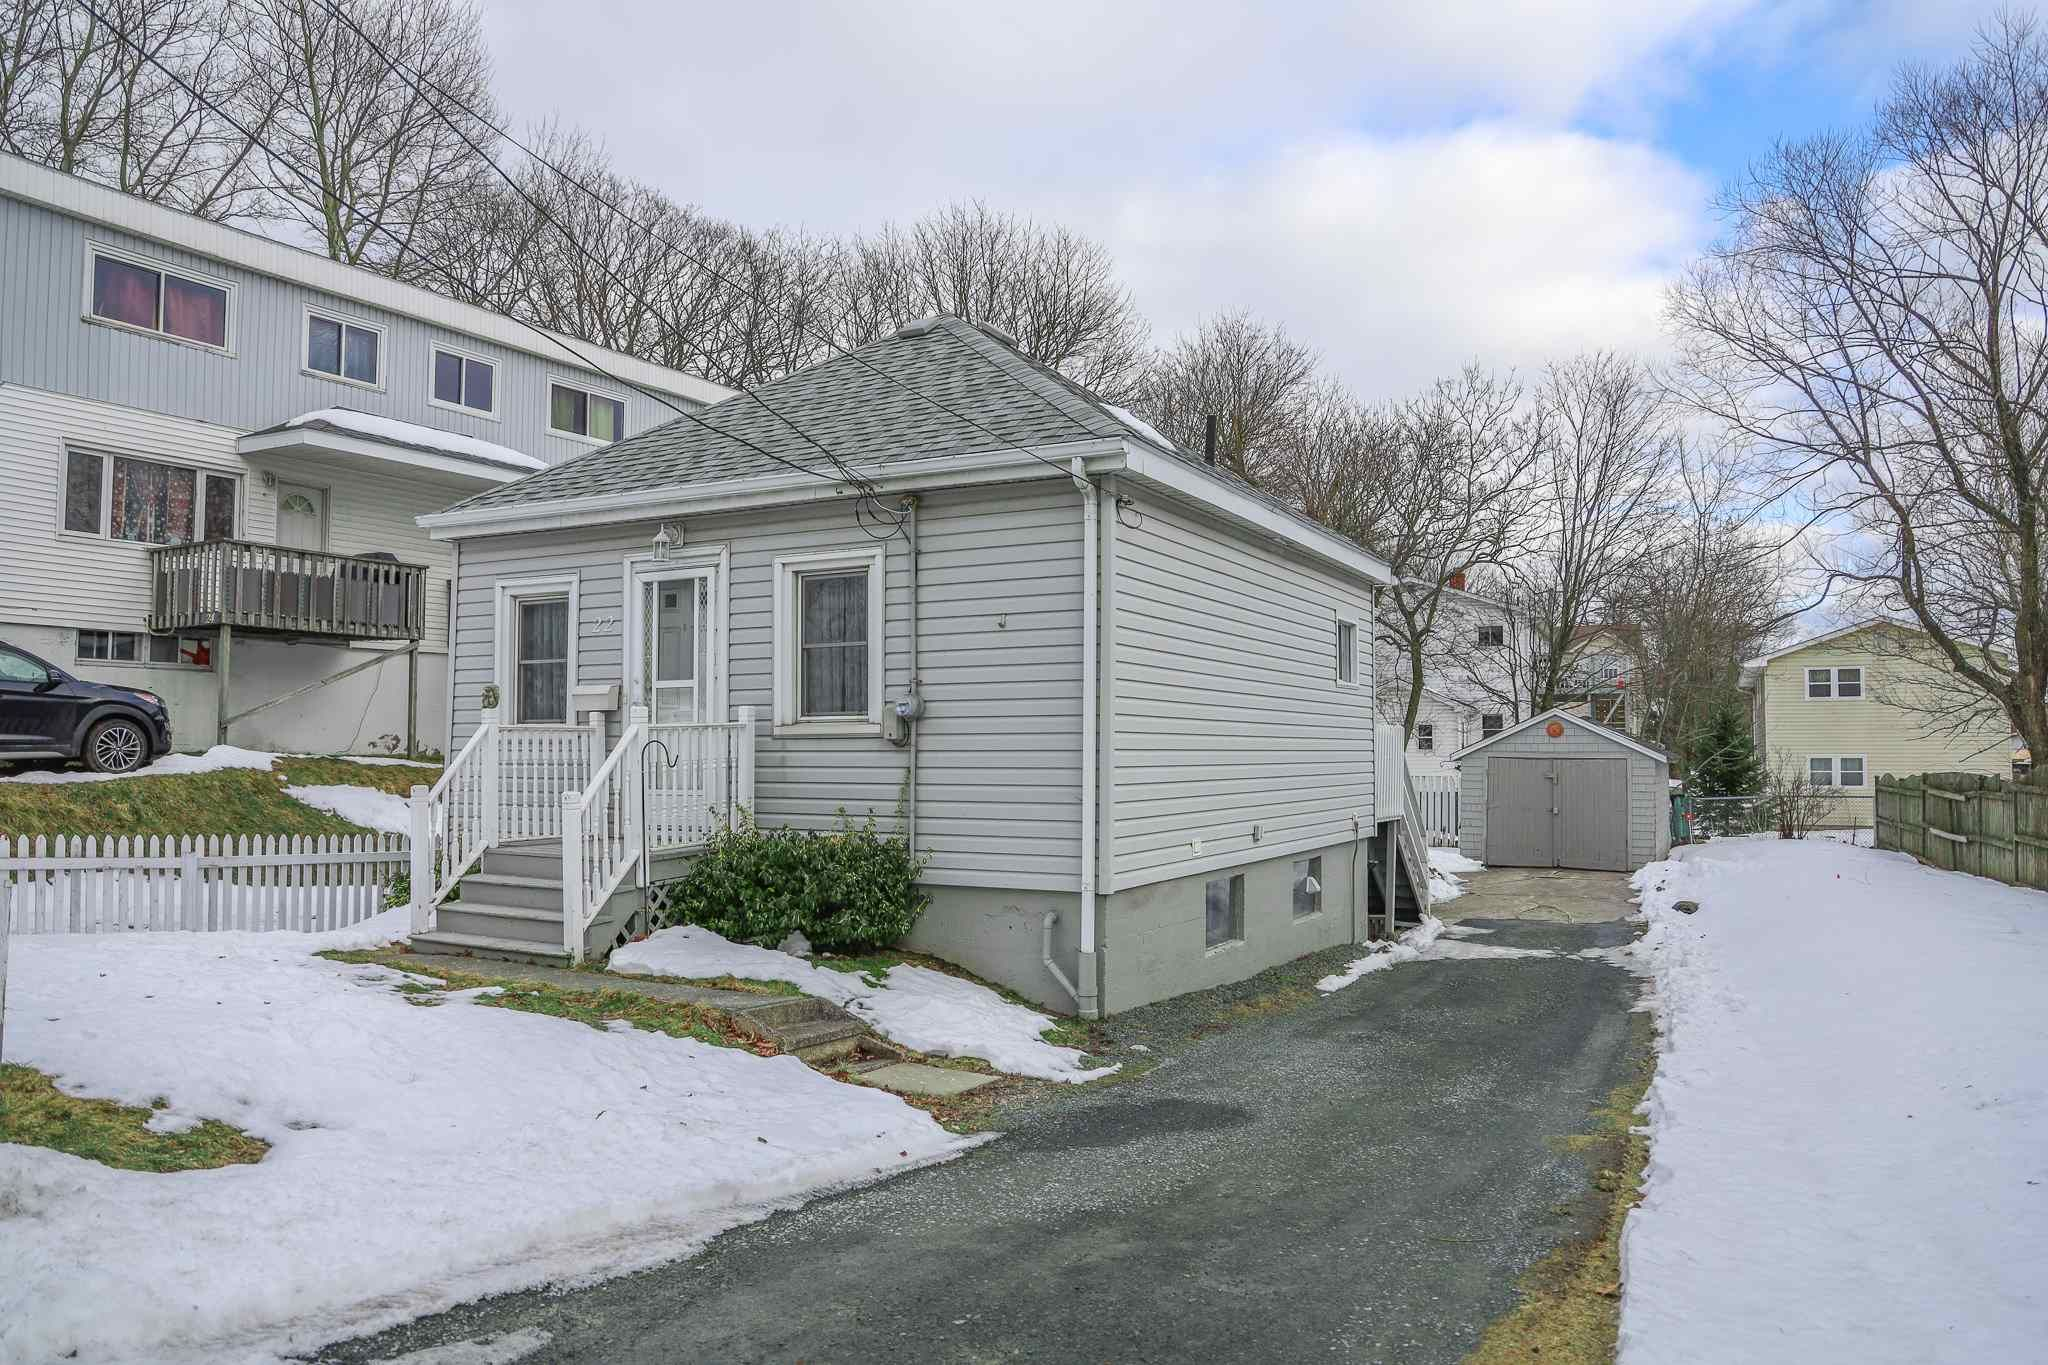 Main Photo: 22 Irving Street in Woodside: 11-Dartmouth Woodside, Eastern Passage, Cow Bay Residential for sale (Halifax-Dartmouth)  : MLS®# 202102839